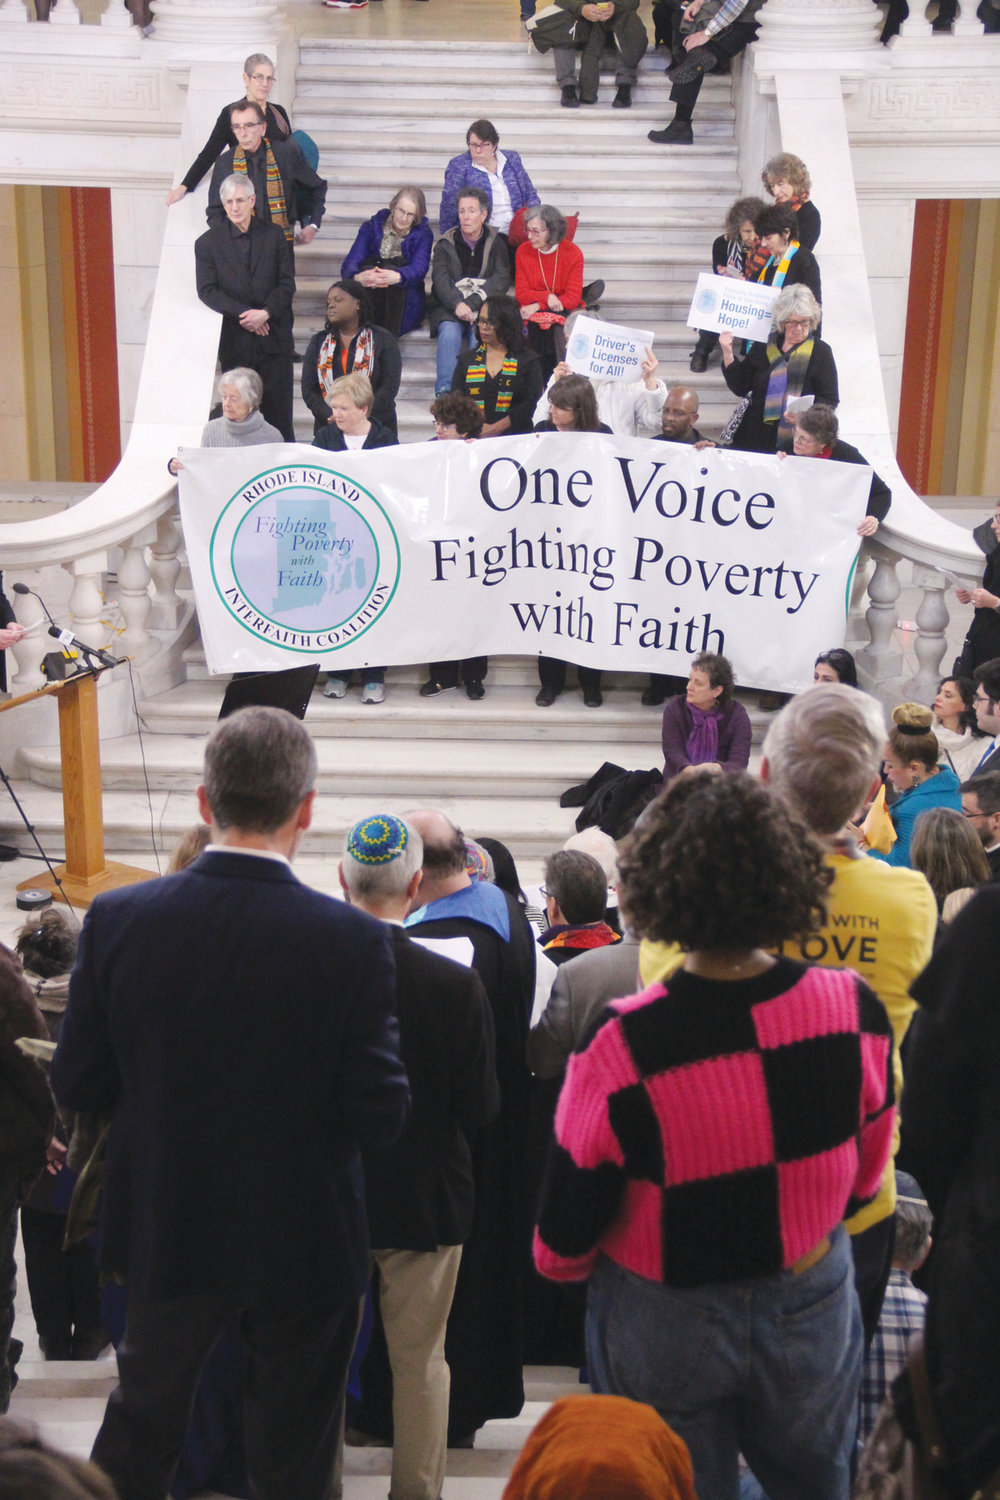 "FAITH IN THEIR LEGISLATORS: More than 200 representatives from churches across the state rallied in the State House Rotunda on the opening day of the 2020 session at a ""Fighting Poverty with Faith Vigil."" The group named legislators, praying for them. The Rhode Island Interfaith Coalition seeks to ban housing discrimination, provide more funding for affordable housing, increase staffing at nursing homes and increase the minimum wage to $15 an hour."